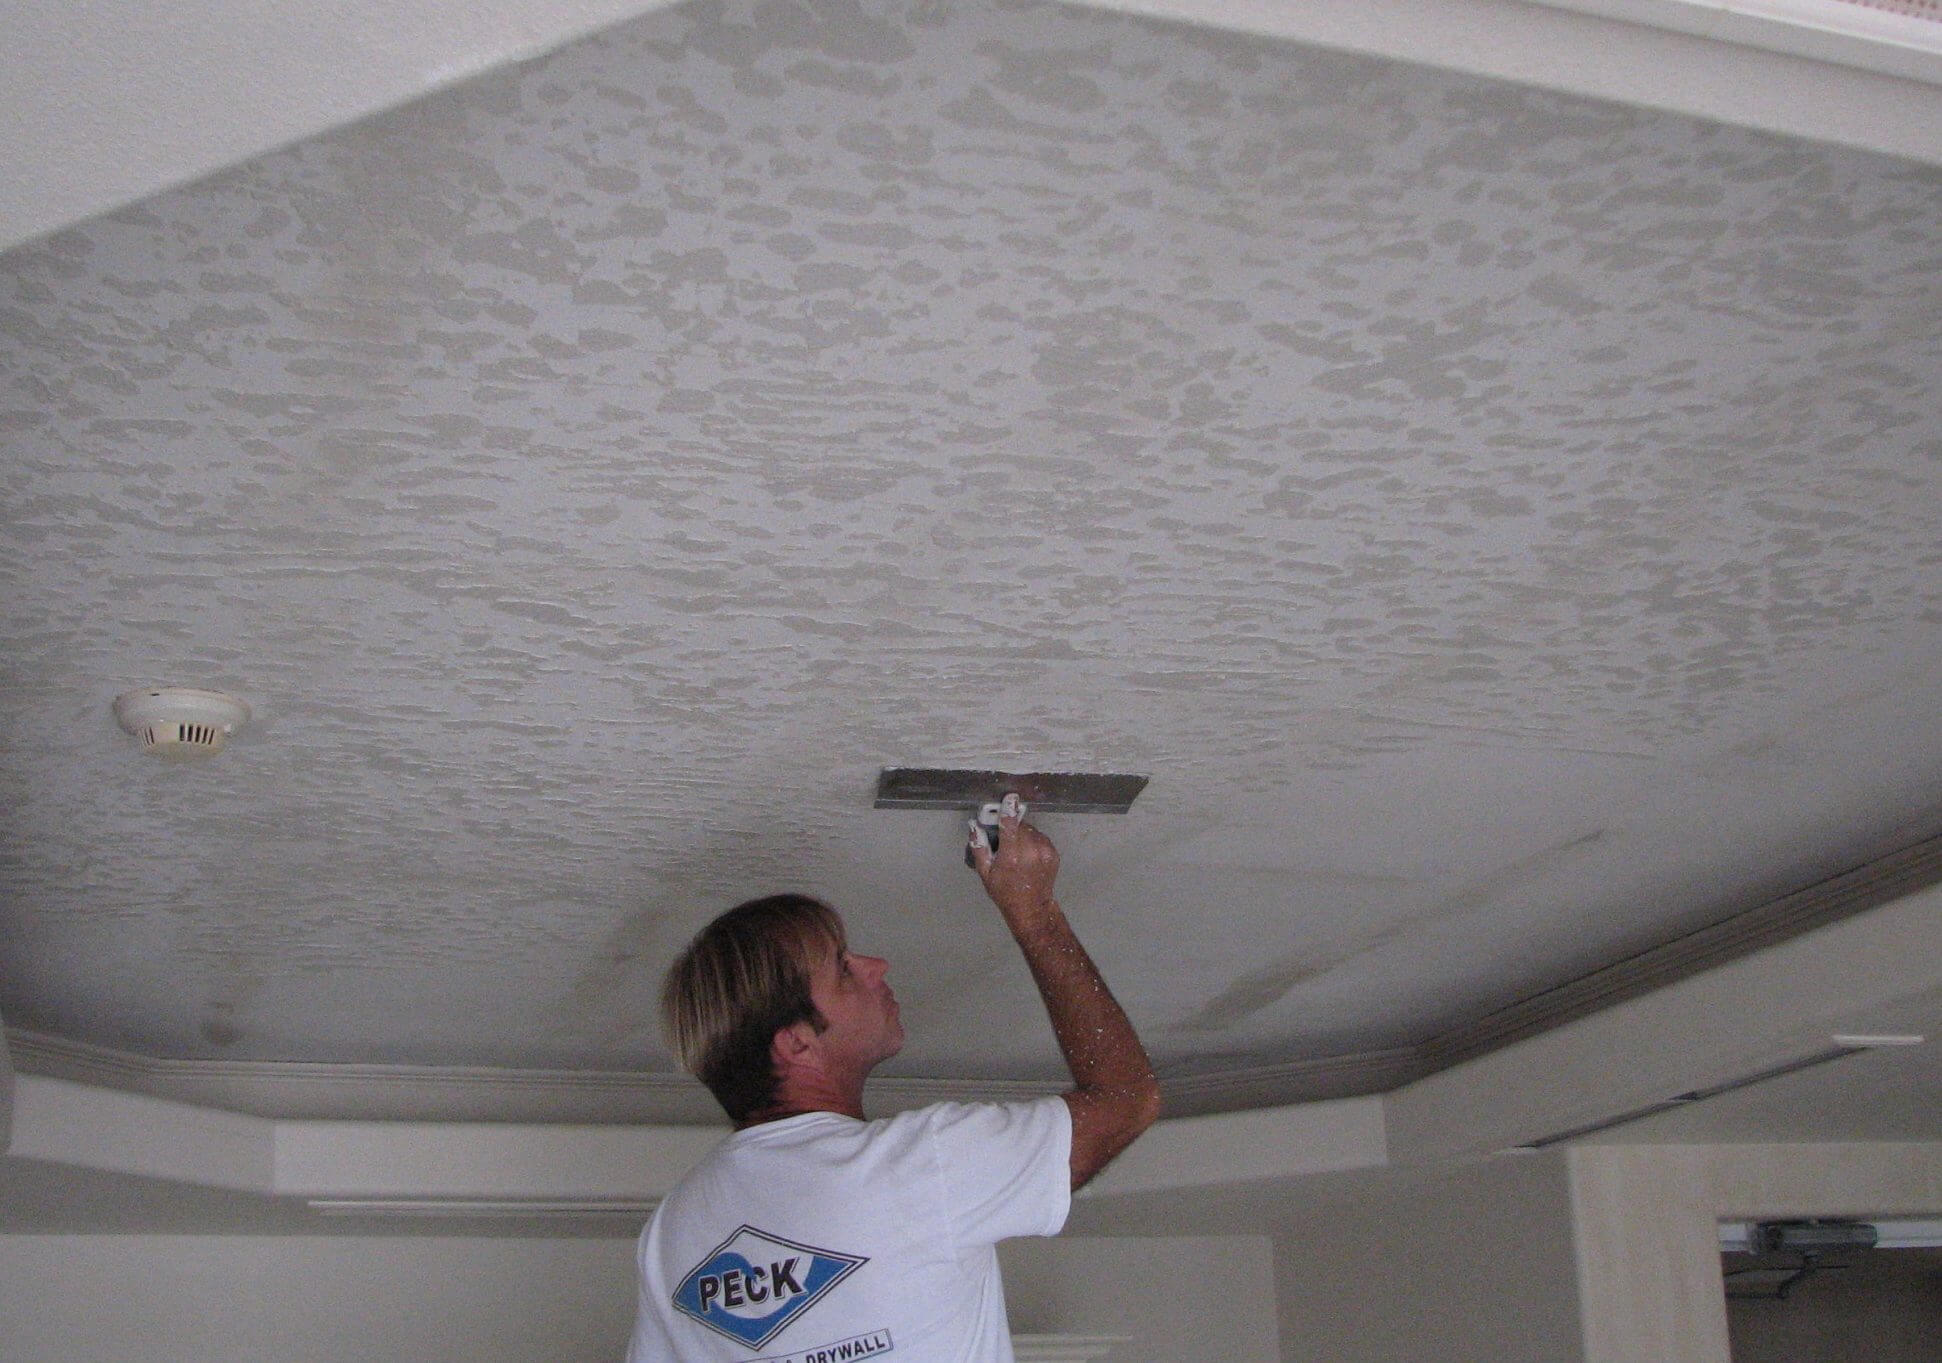 Ceiling texture types how to choose drywall finish for for Best paint finish for bathroom ceiling